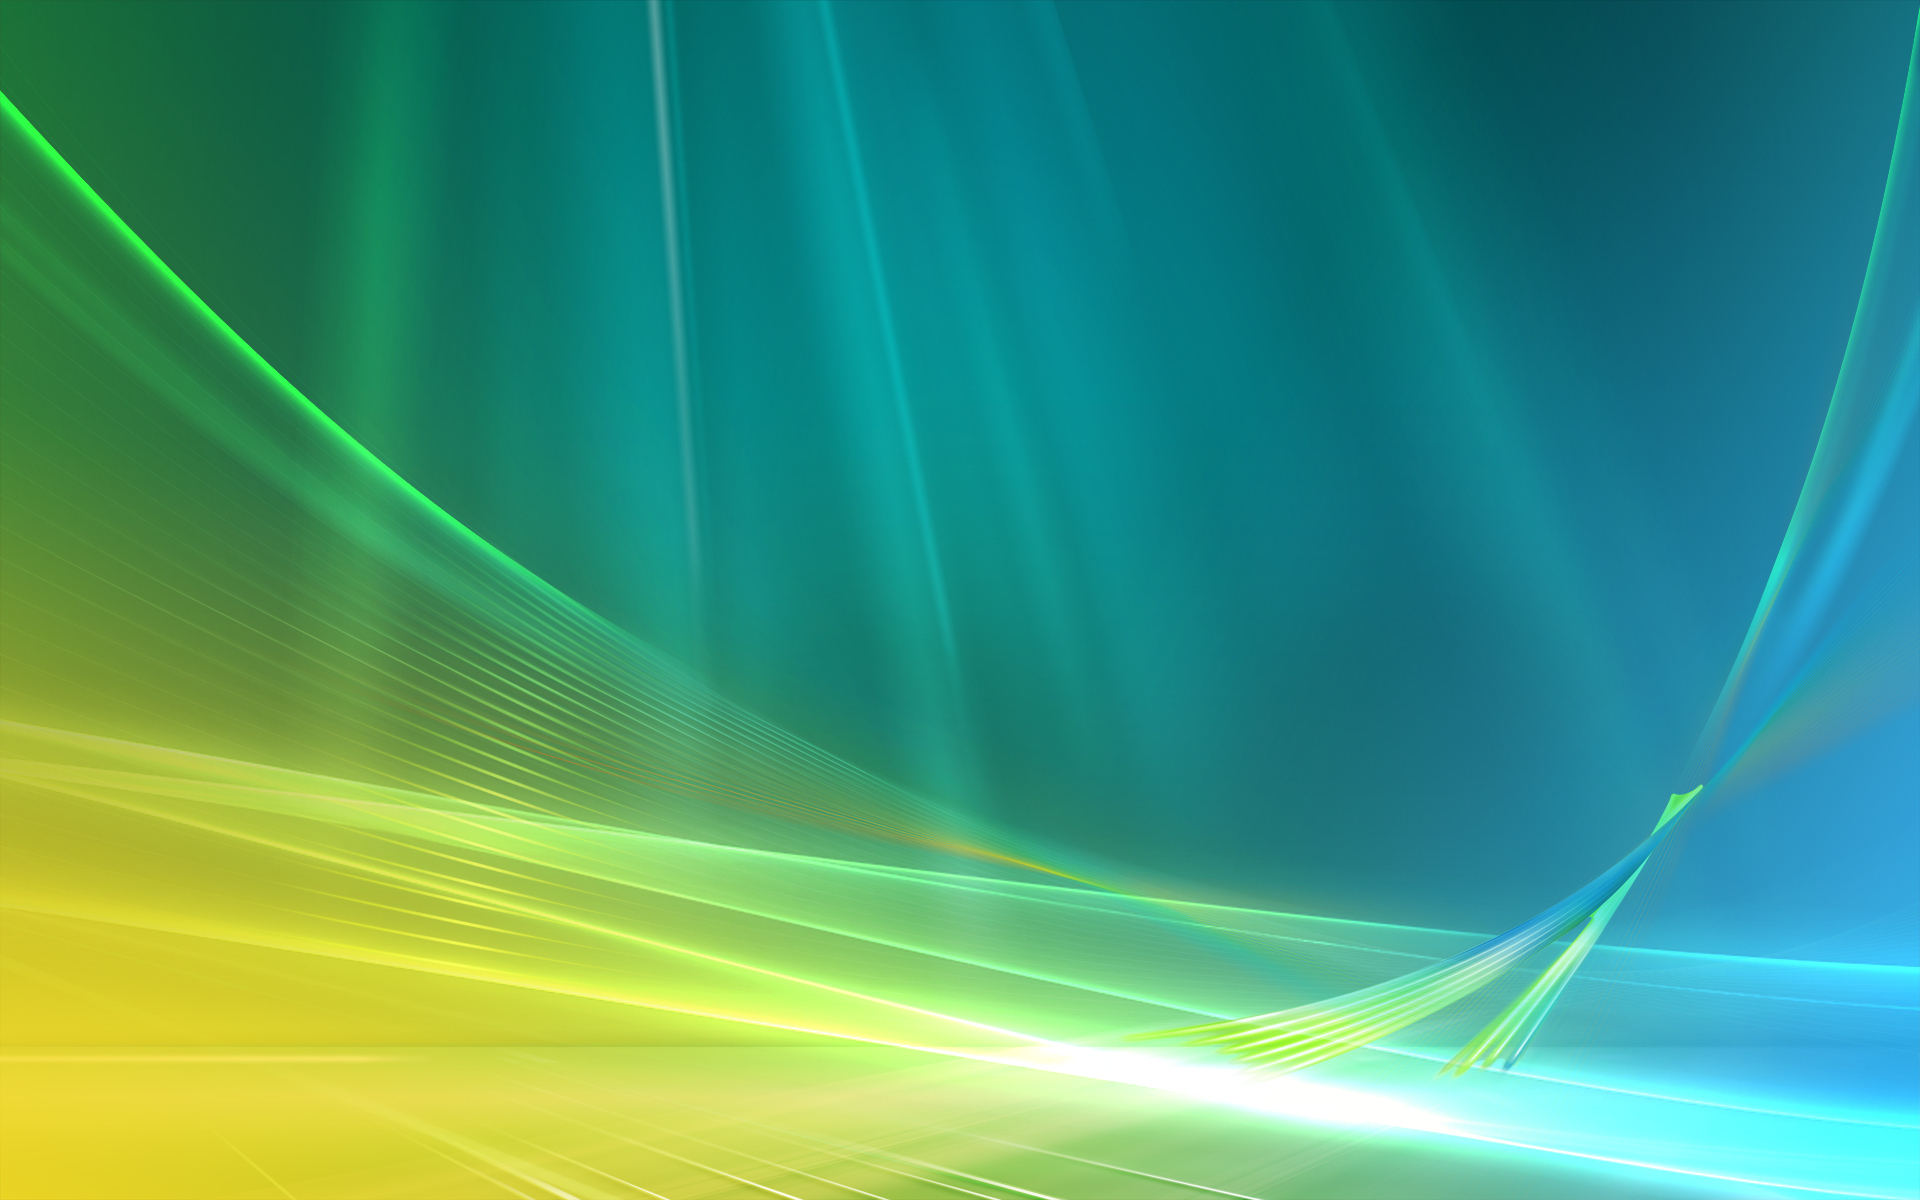 Sfondo per windows 8 wallpaper windows8 windows 10 windows 8 pictures - Die Standard Wallpaper Von Windows Ein Blick In Die